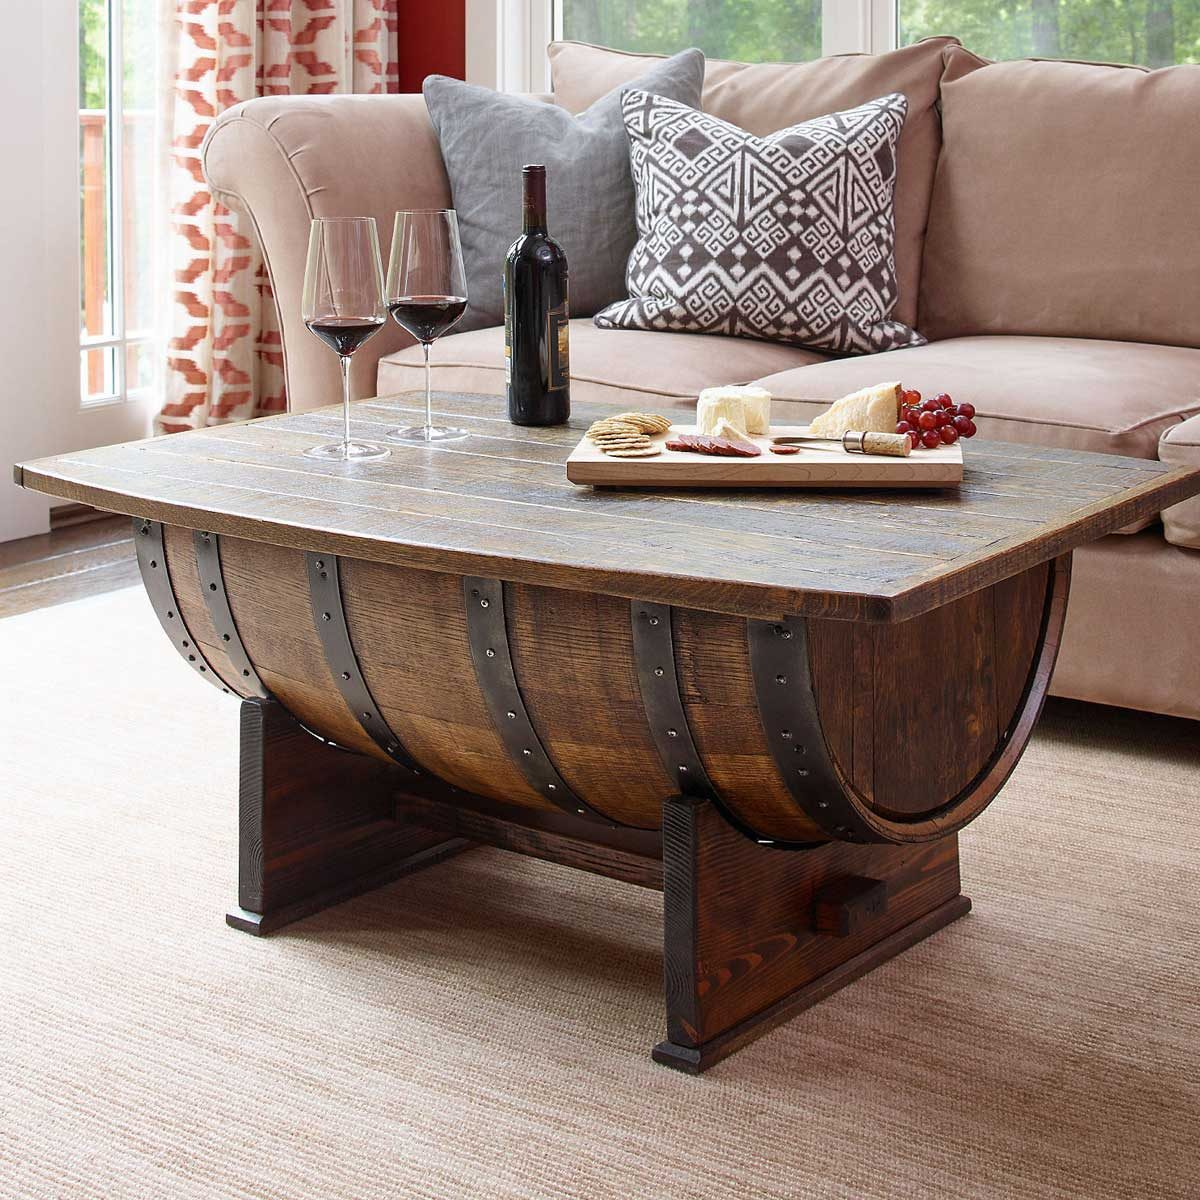 14 Super Cool Homemade Coffee Table Ideas The Family